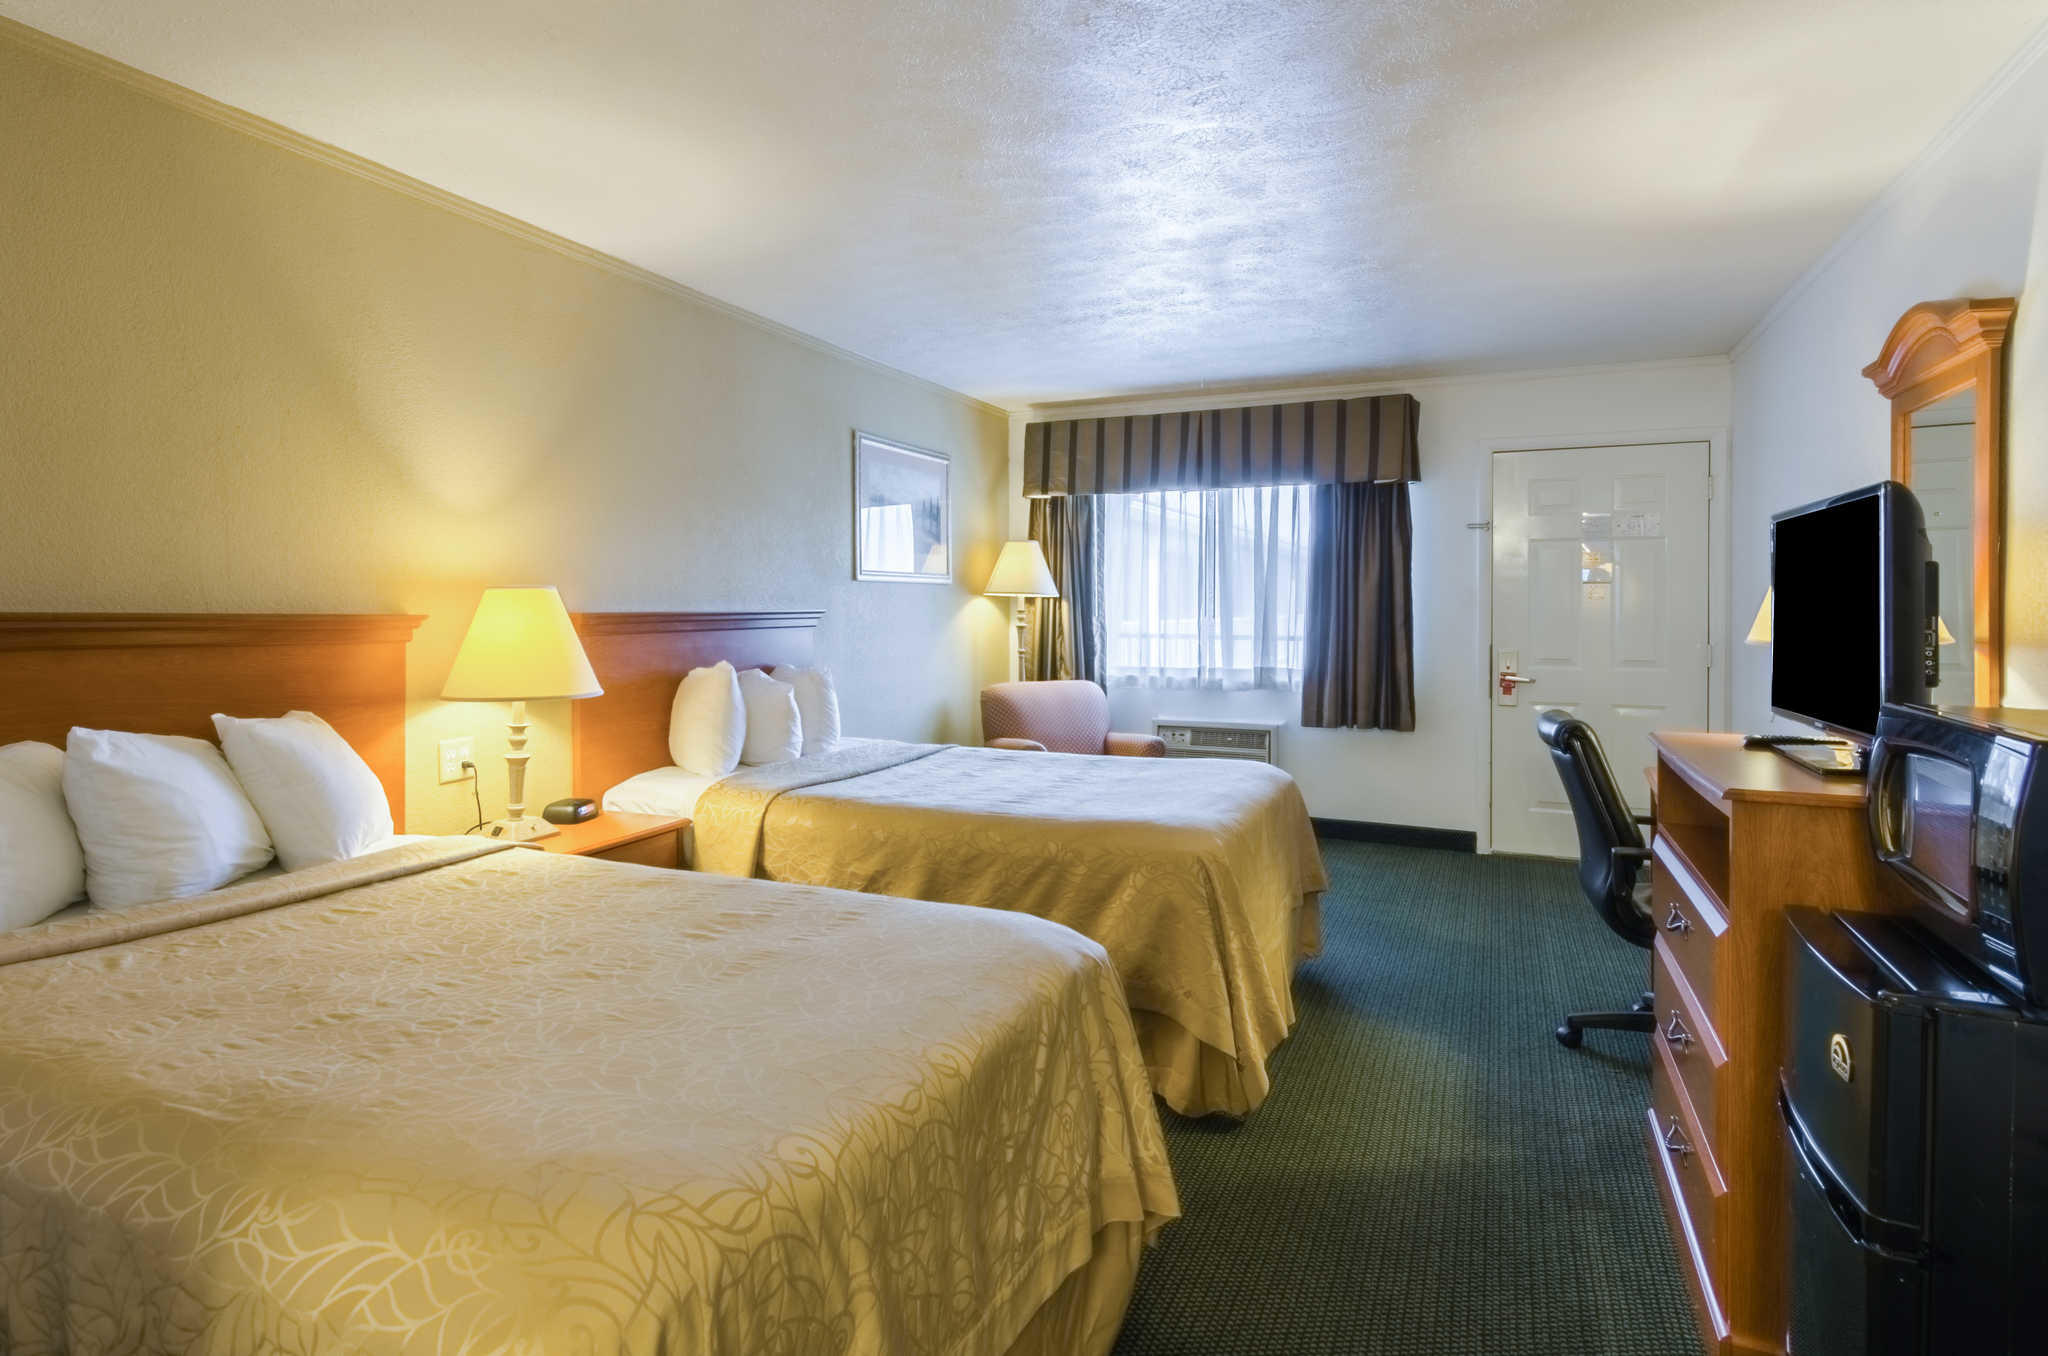 Hotels With Late Check Out Times Near Me